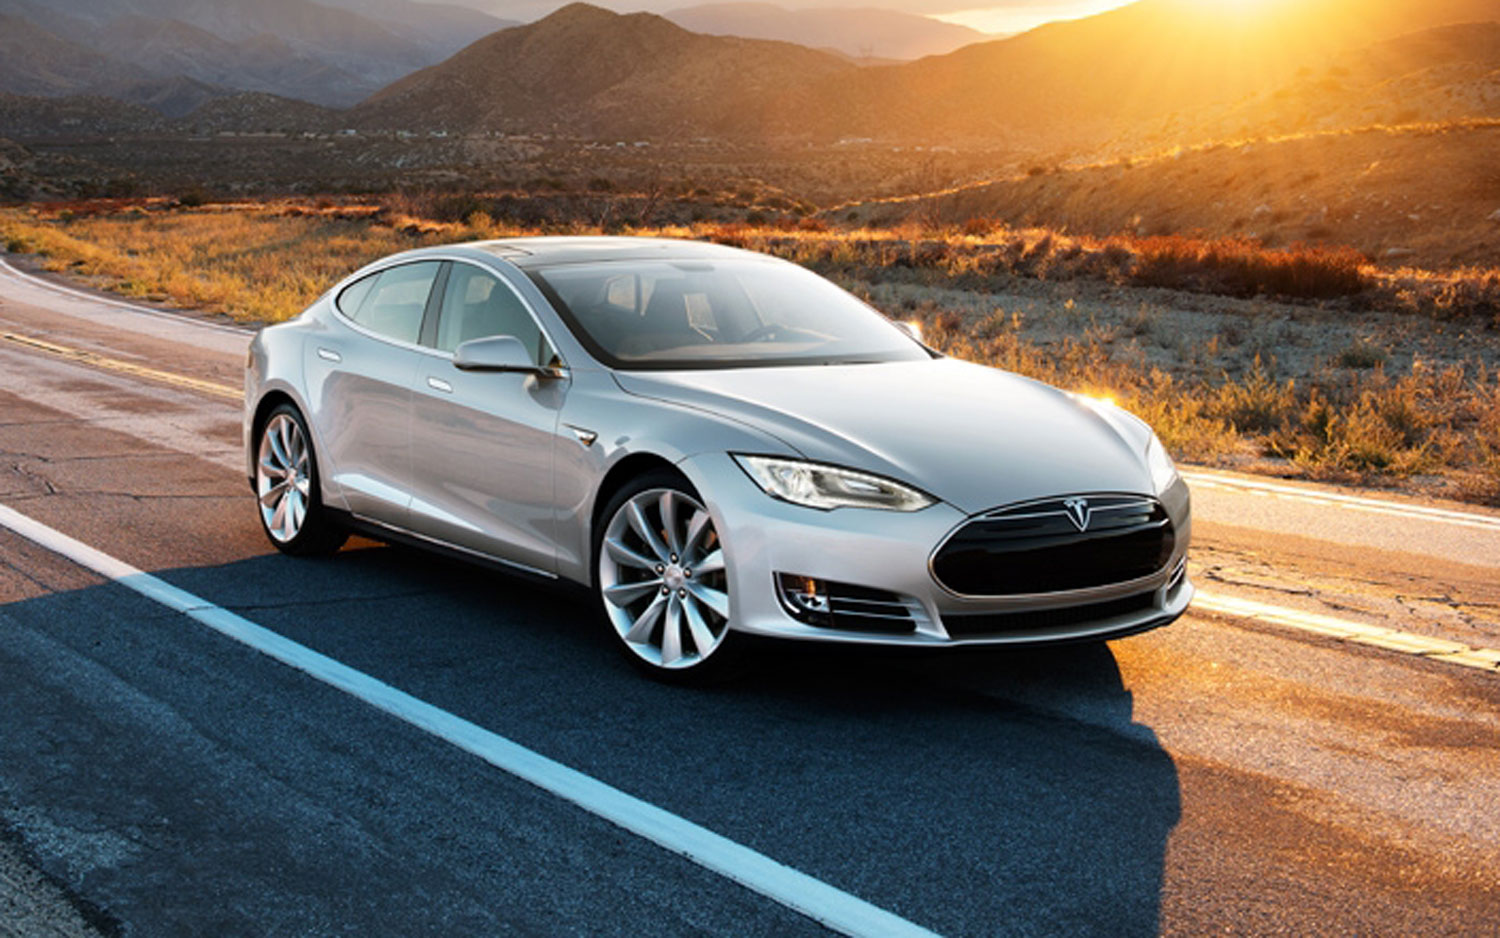 2013 Tesla Model S Front Right Side In Desert1